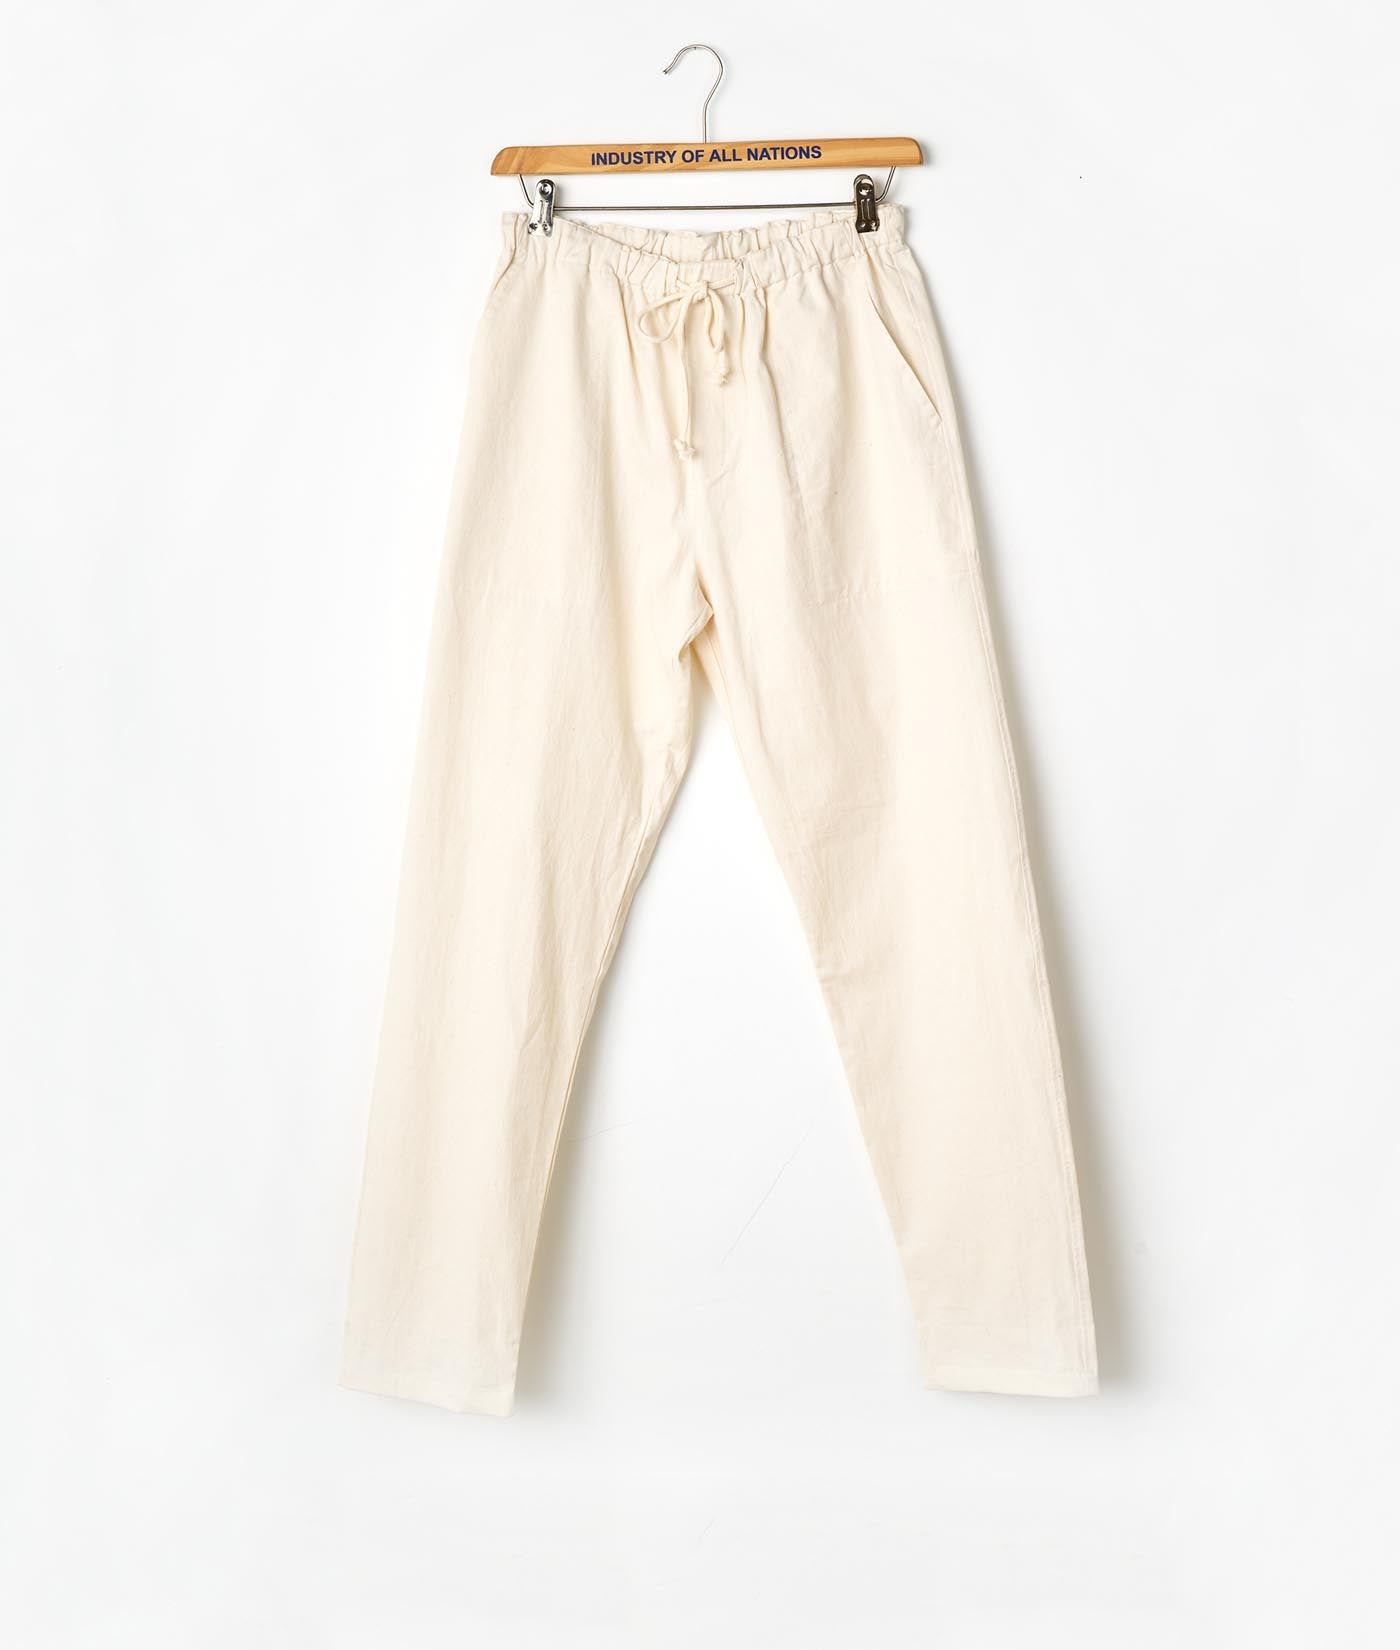 Industry of All Nations Organic Cotton Drawstring Pants Natural